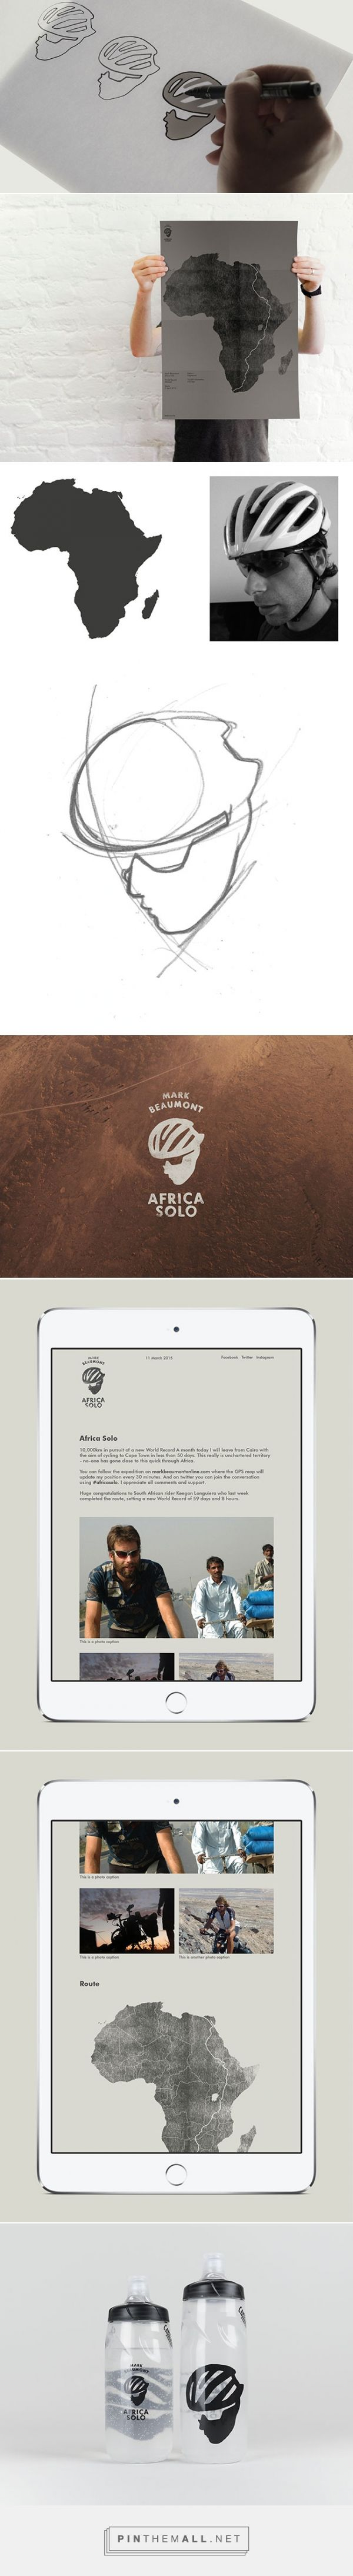 Africa Solo | Logo Design Love - created via http://pinthemall.net